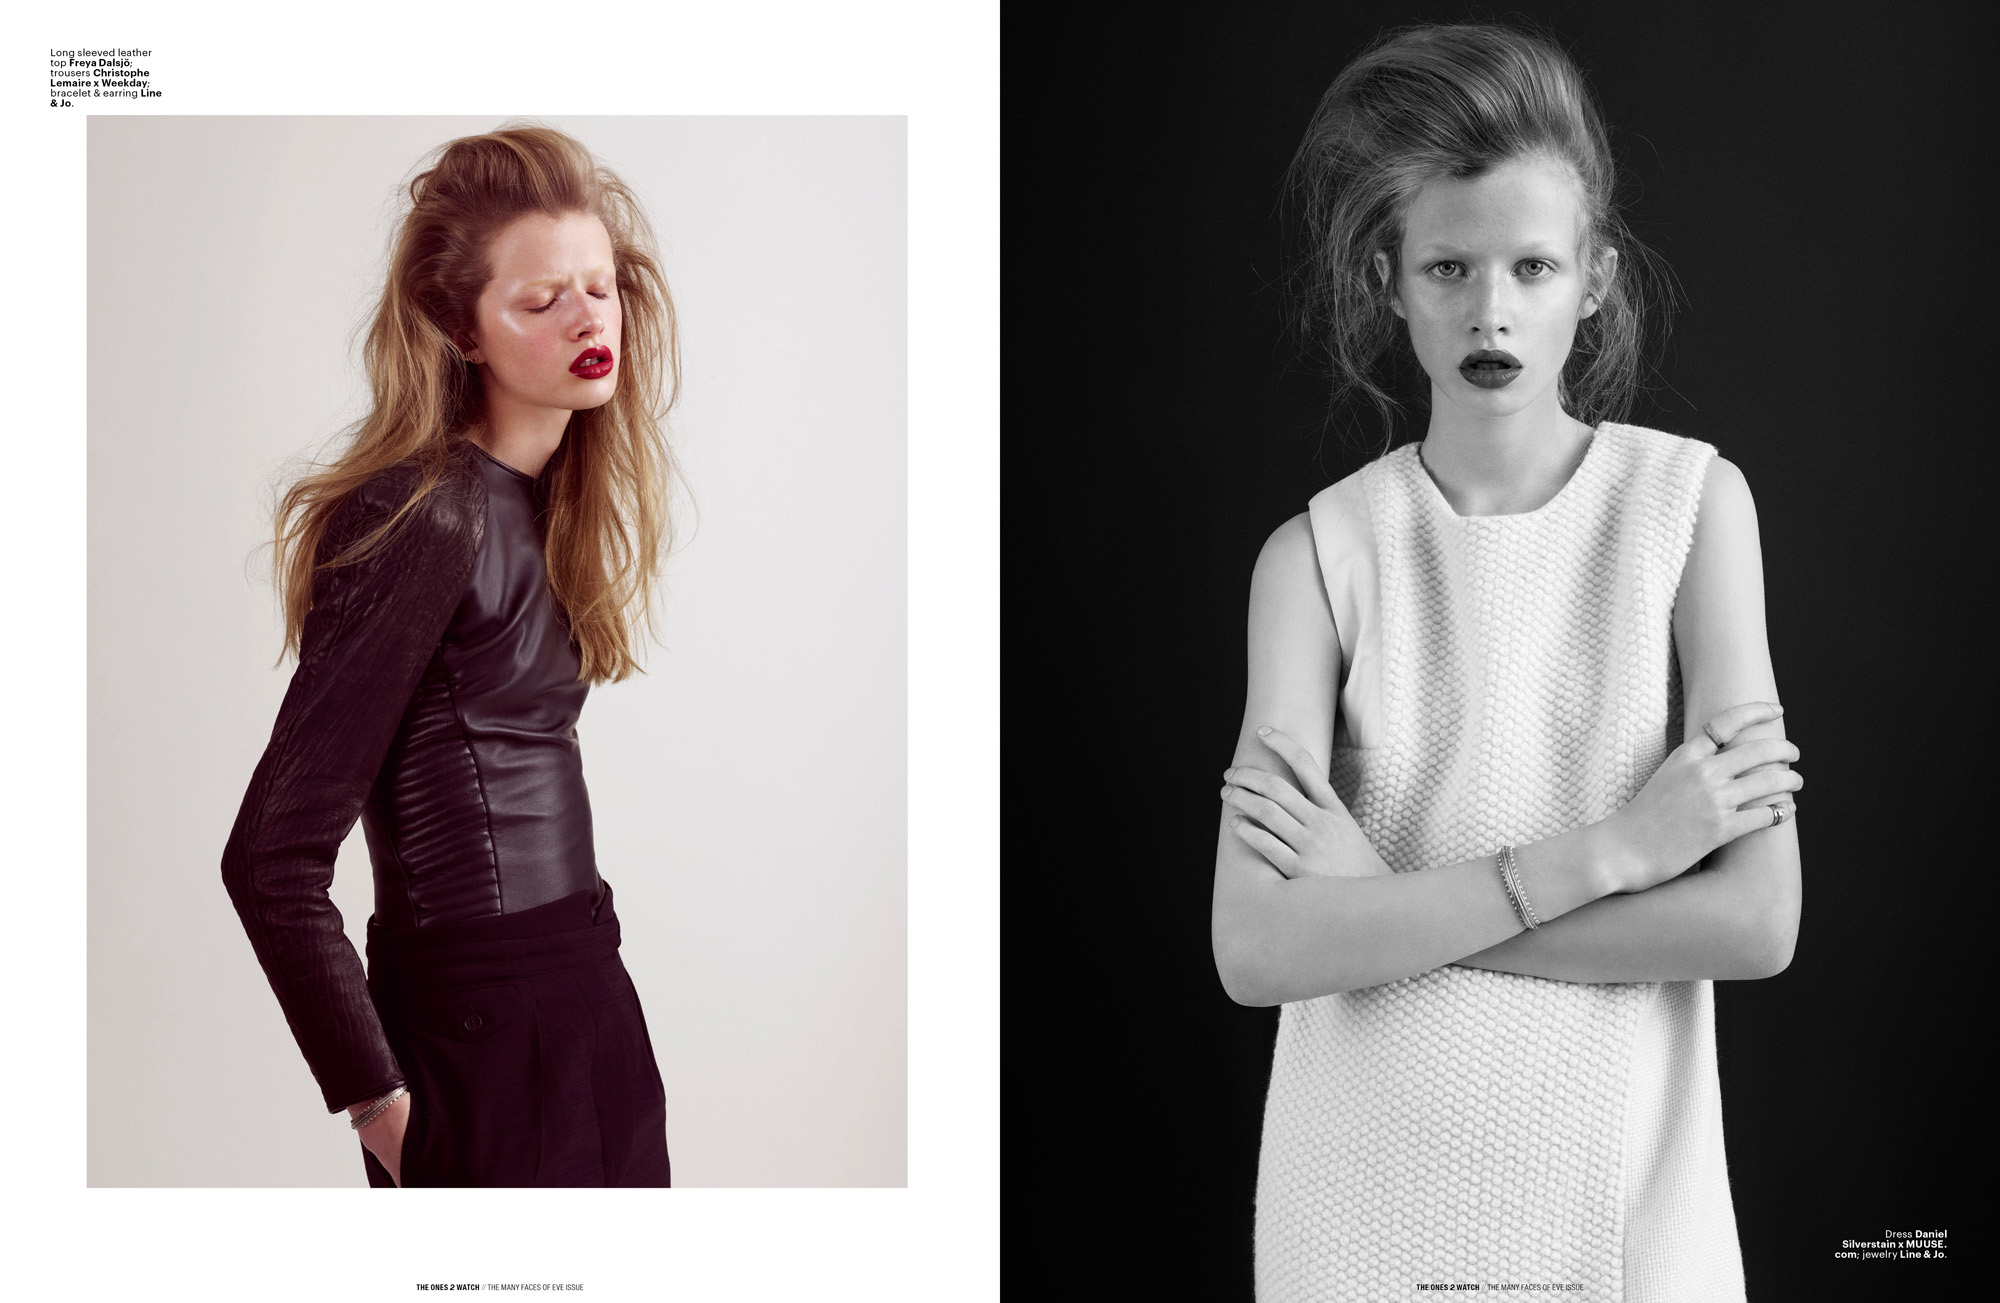 Left: Long sleeved leather top Freya Dalsjö; trousers Christophe Lemaire x Weekday; bracelet & earring Line & Jo. | Right: Dress Daniel Silverstain x MUUSE.com; jewelry Line & Jo.